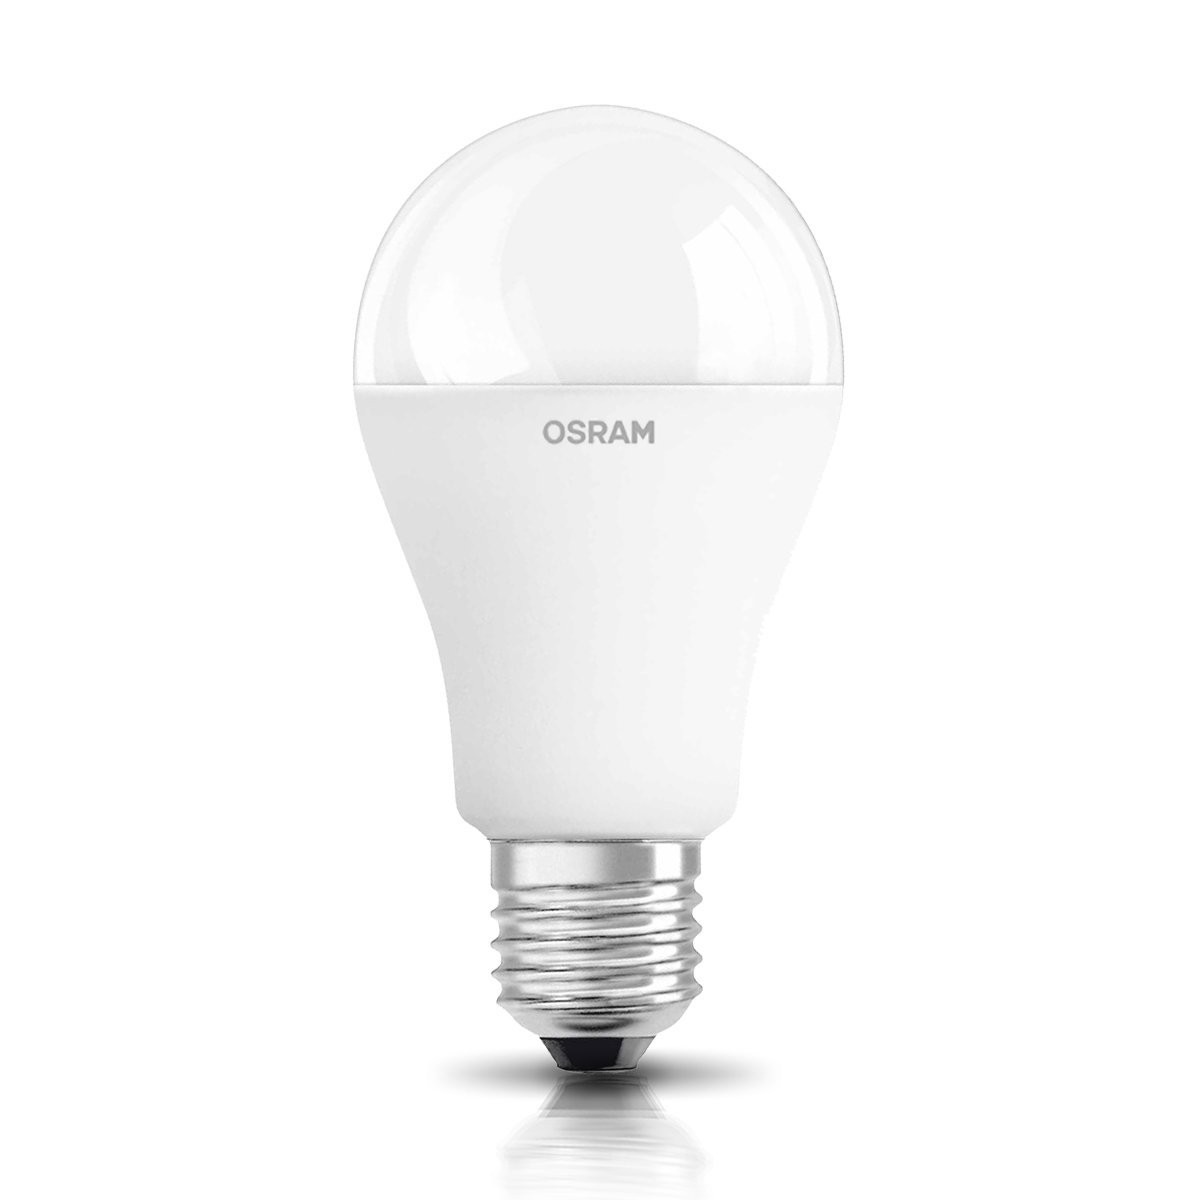 osram 13w e27 led lamp neutraal wit vervangt 100w gloeilamp. Black Bedroom Furniture Sets. Home Design Ideas